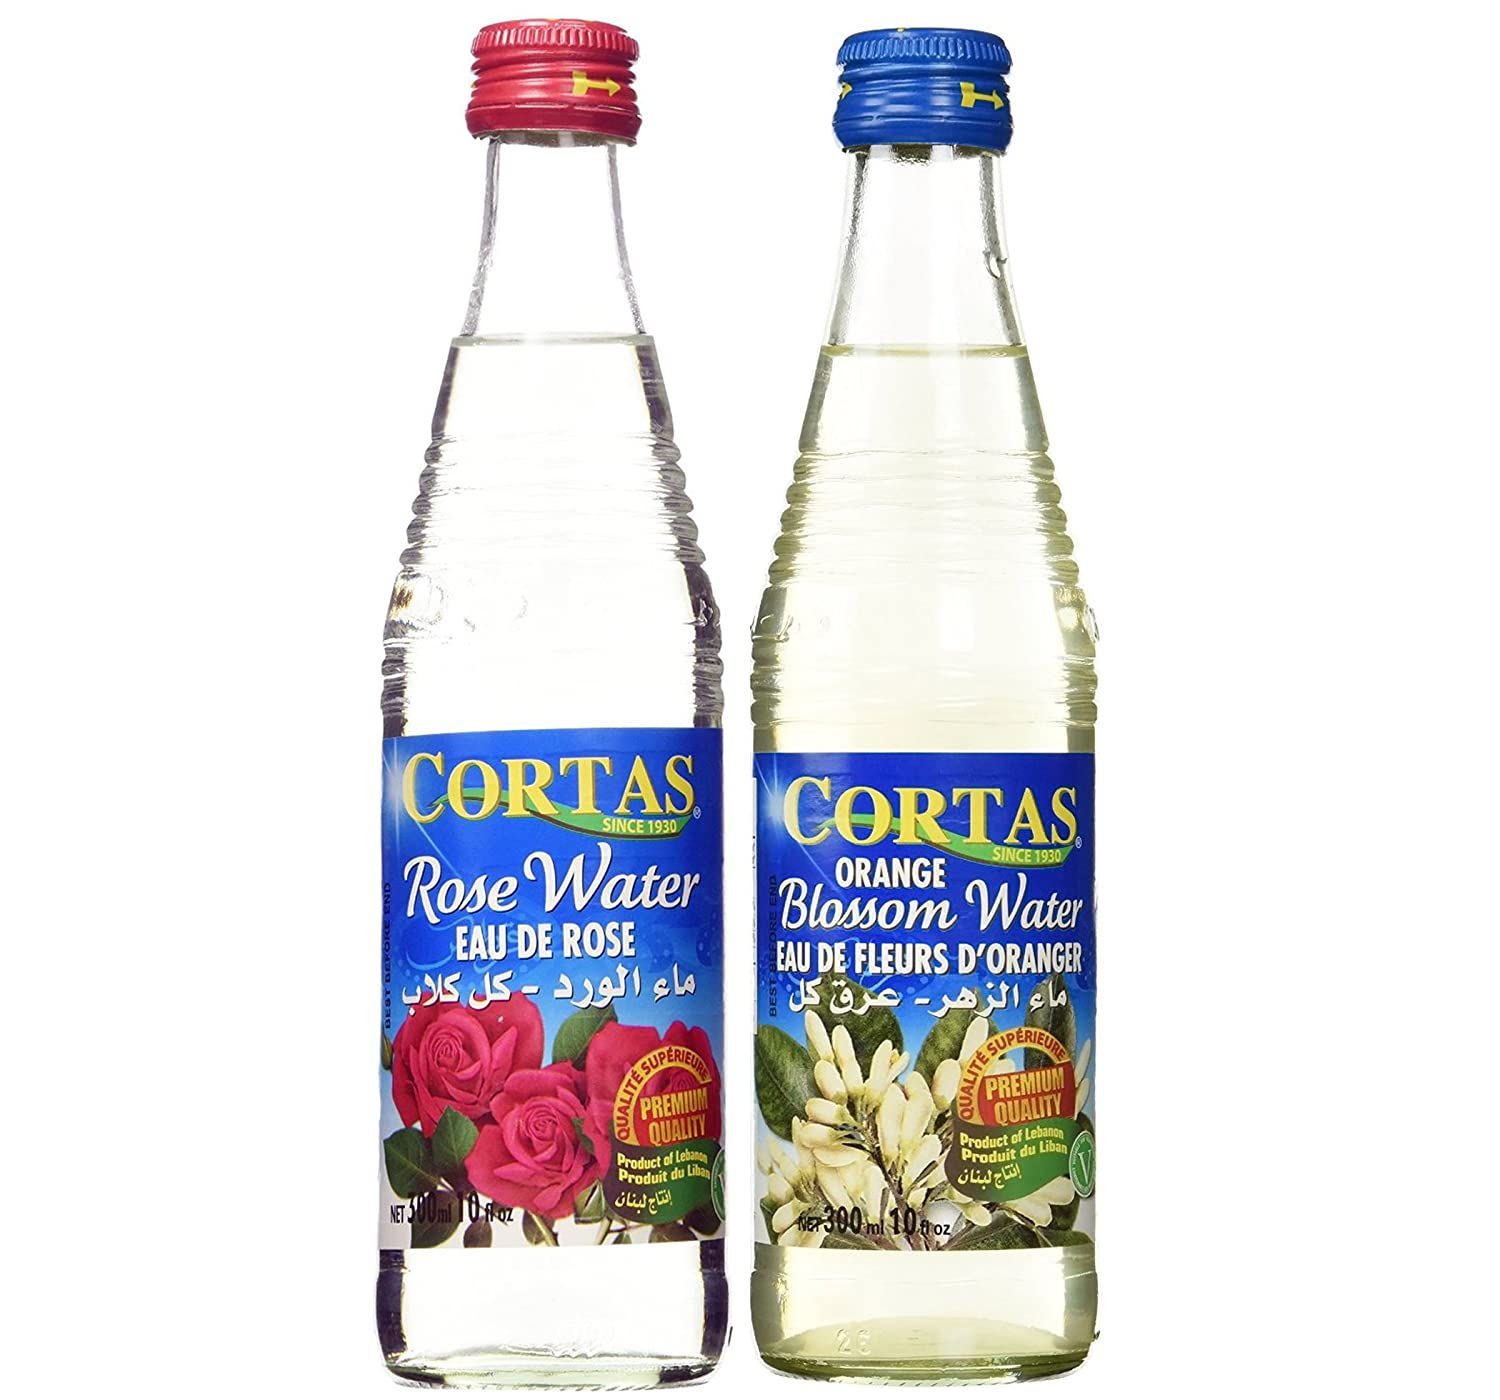 Cortas Combo Pack - 1) Cortas Rose Water 10 Fl. Oz., & 2) Cortas Orange Blossom Water 10 Fl. Oz - Total 2 Bottles